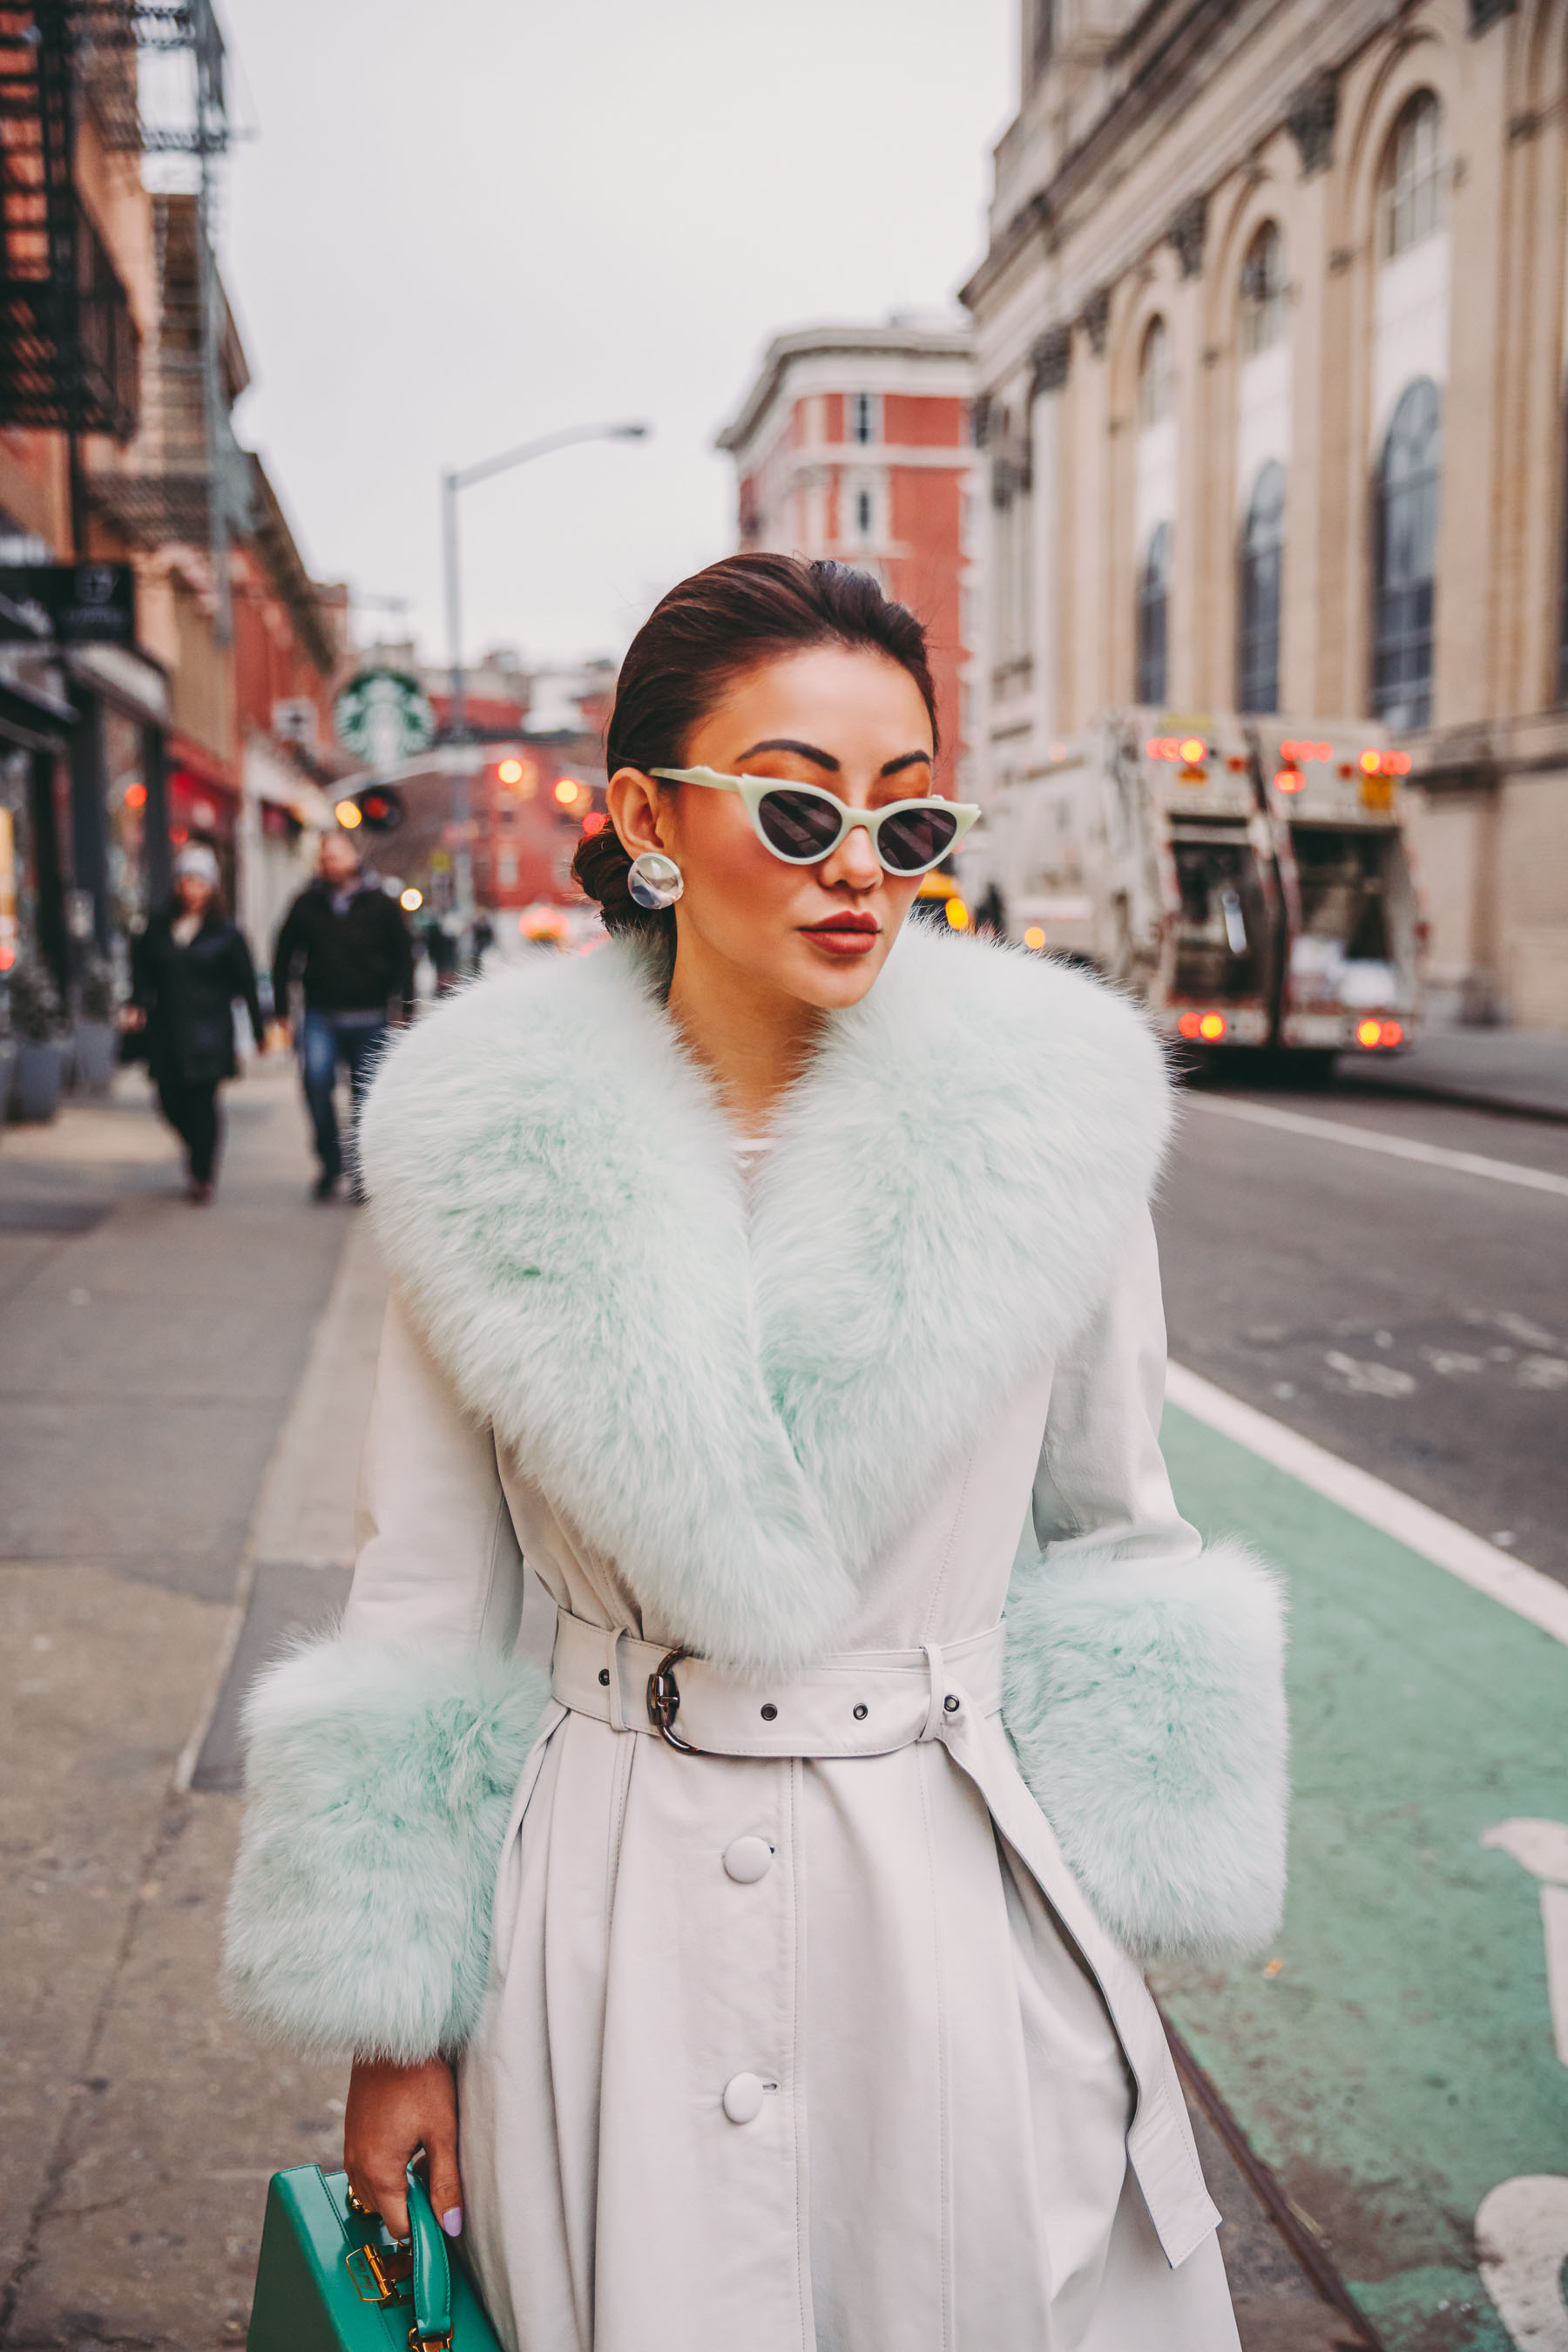 How to Wear Pastel in the winter - Mint fur coat, belted fur coat, nyfw street style, green sunglasses // Notjessfashion.com